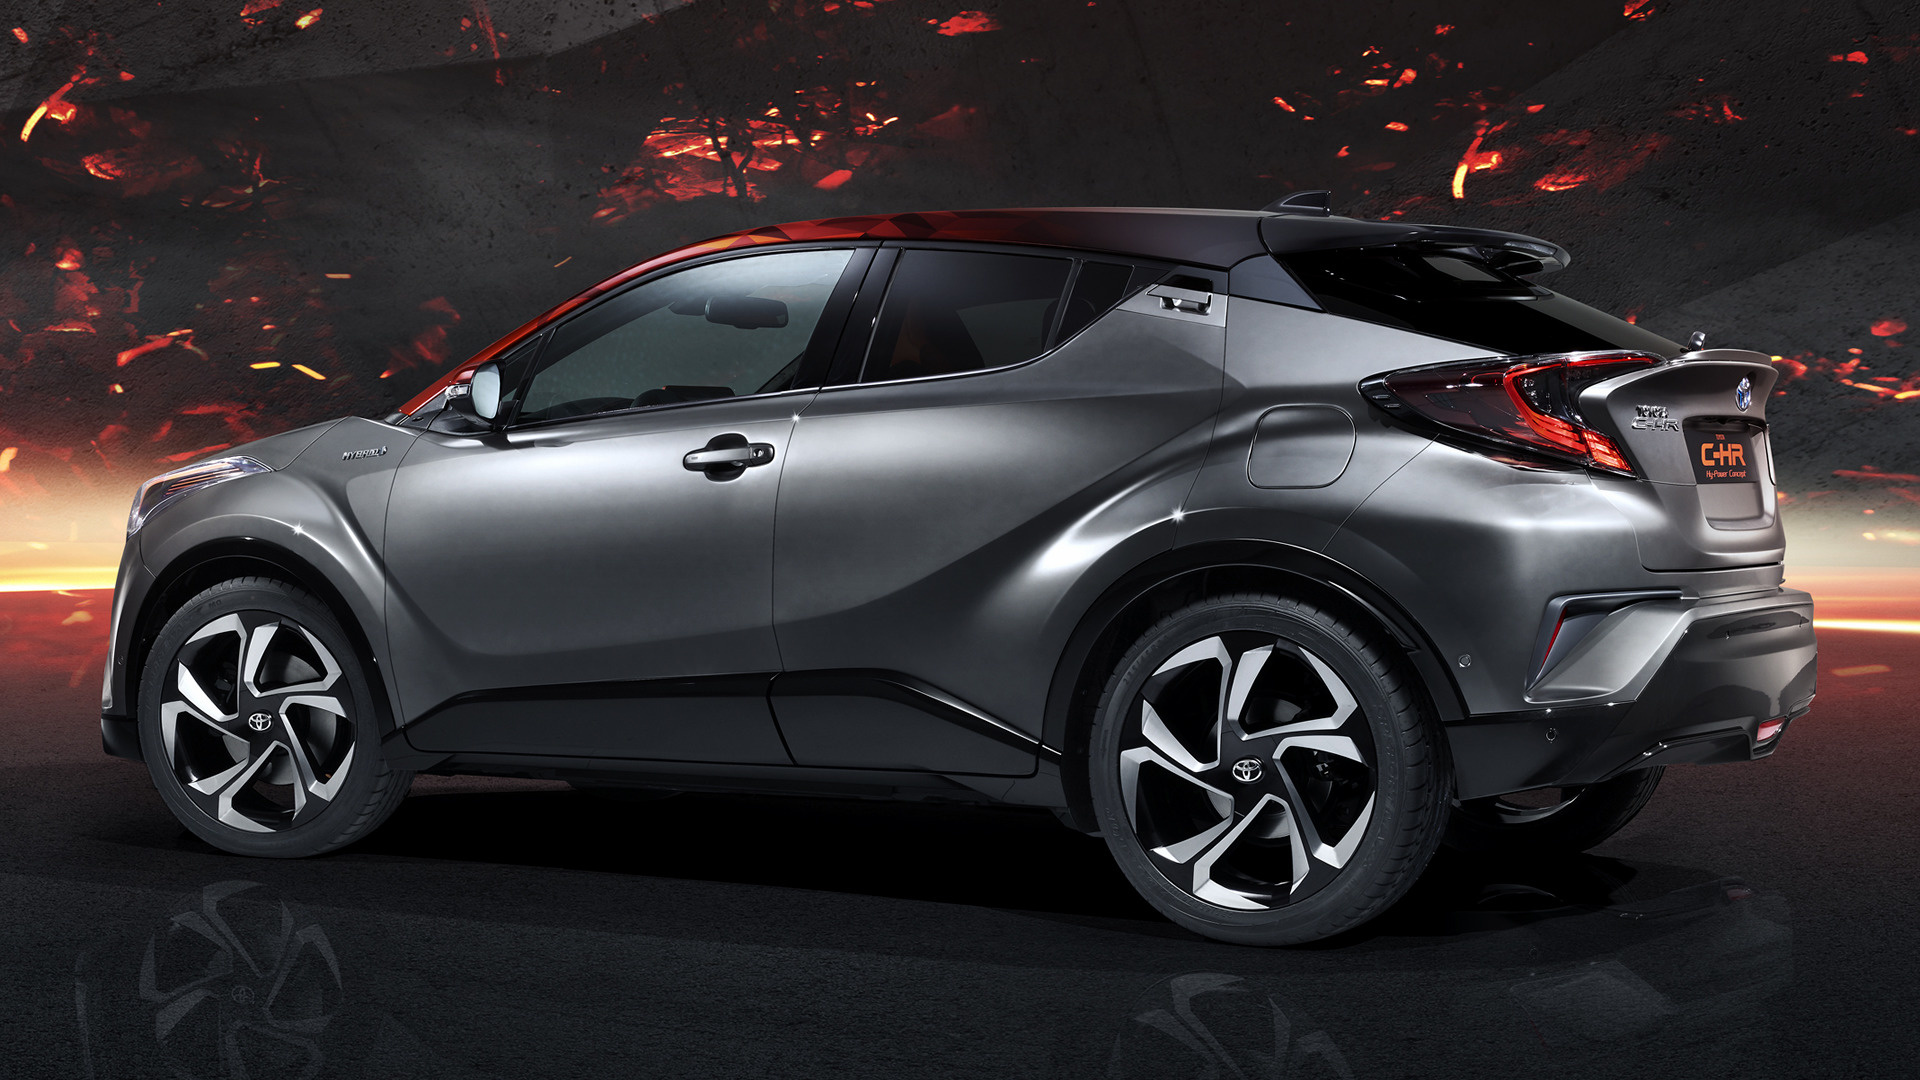 2017 Toyota C-HR Hy-Power Concept - Wallpapers and HD Images | Car Pixel